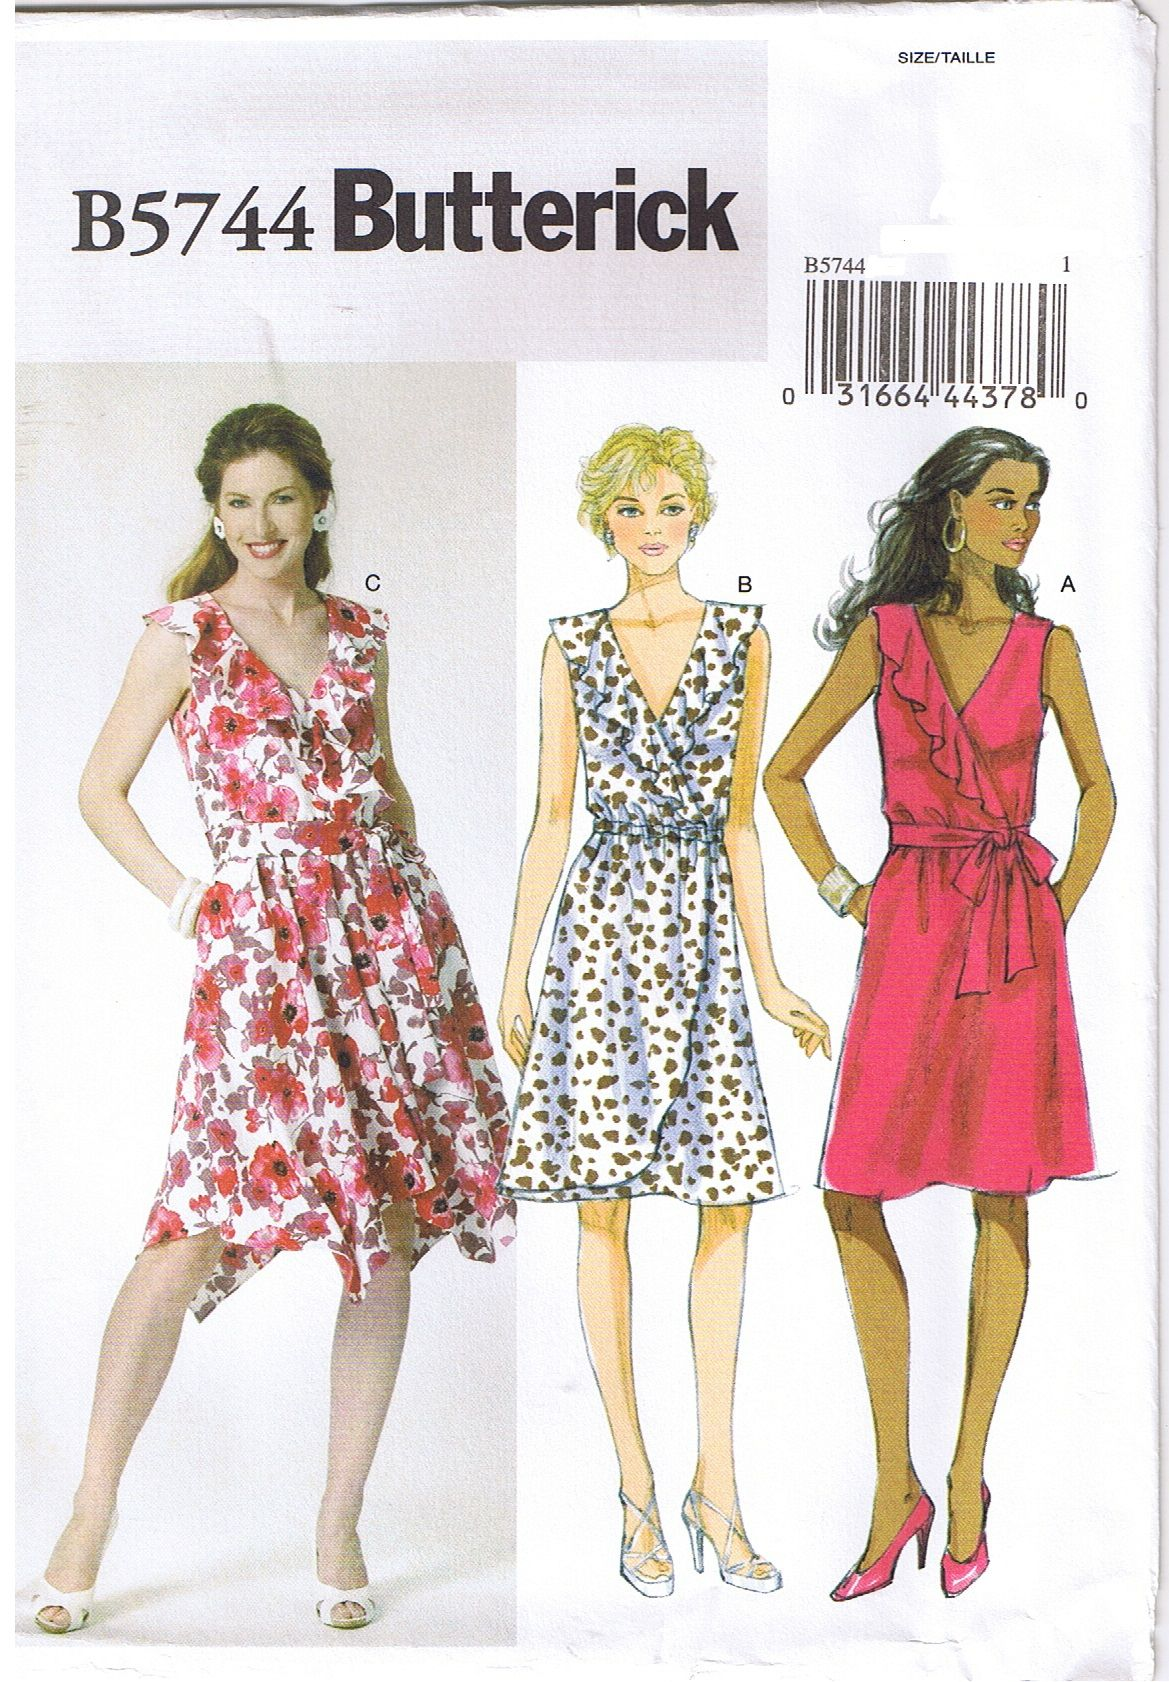 7888f44fe04 Perfect Summer 2017 Dress. Butterick 5744 Sewing pattern available in my  ebay store.